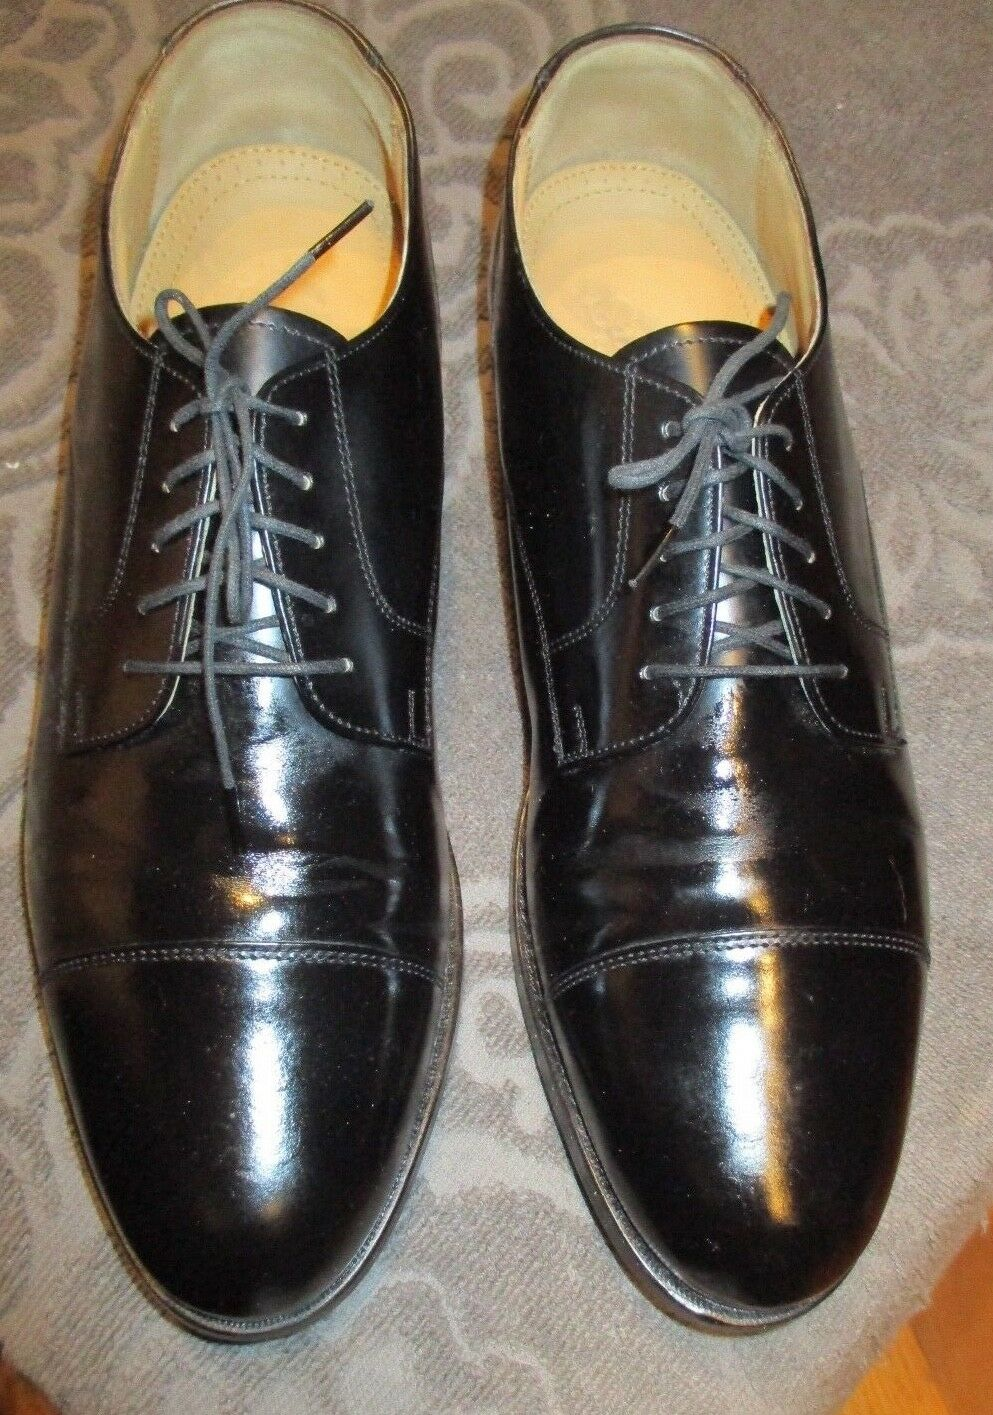 Mens Cap-toe Oxford Stafford Black  Leather shoes Size 9 1 2B AA